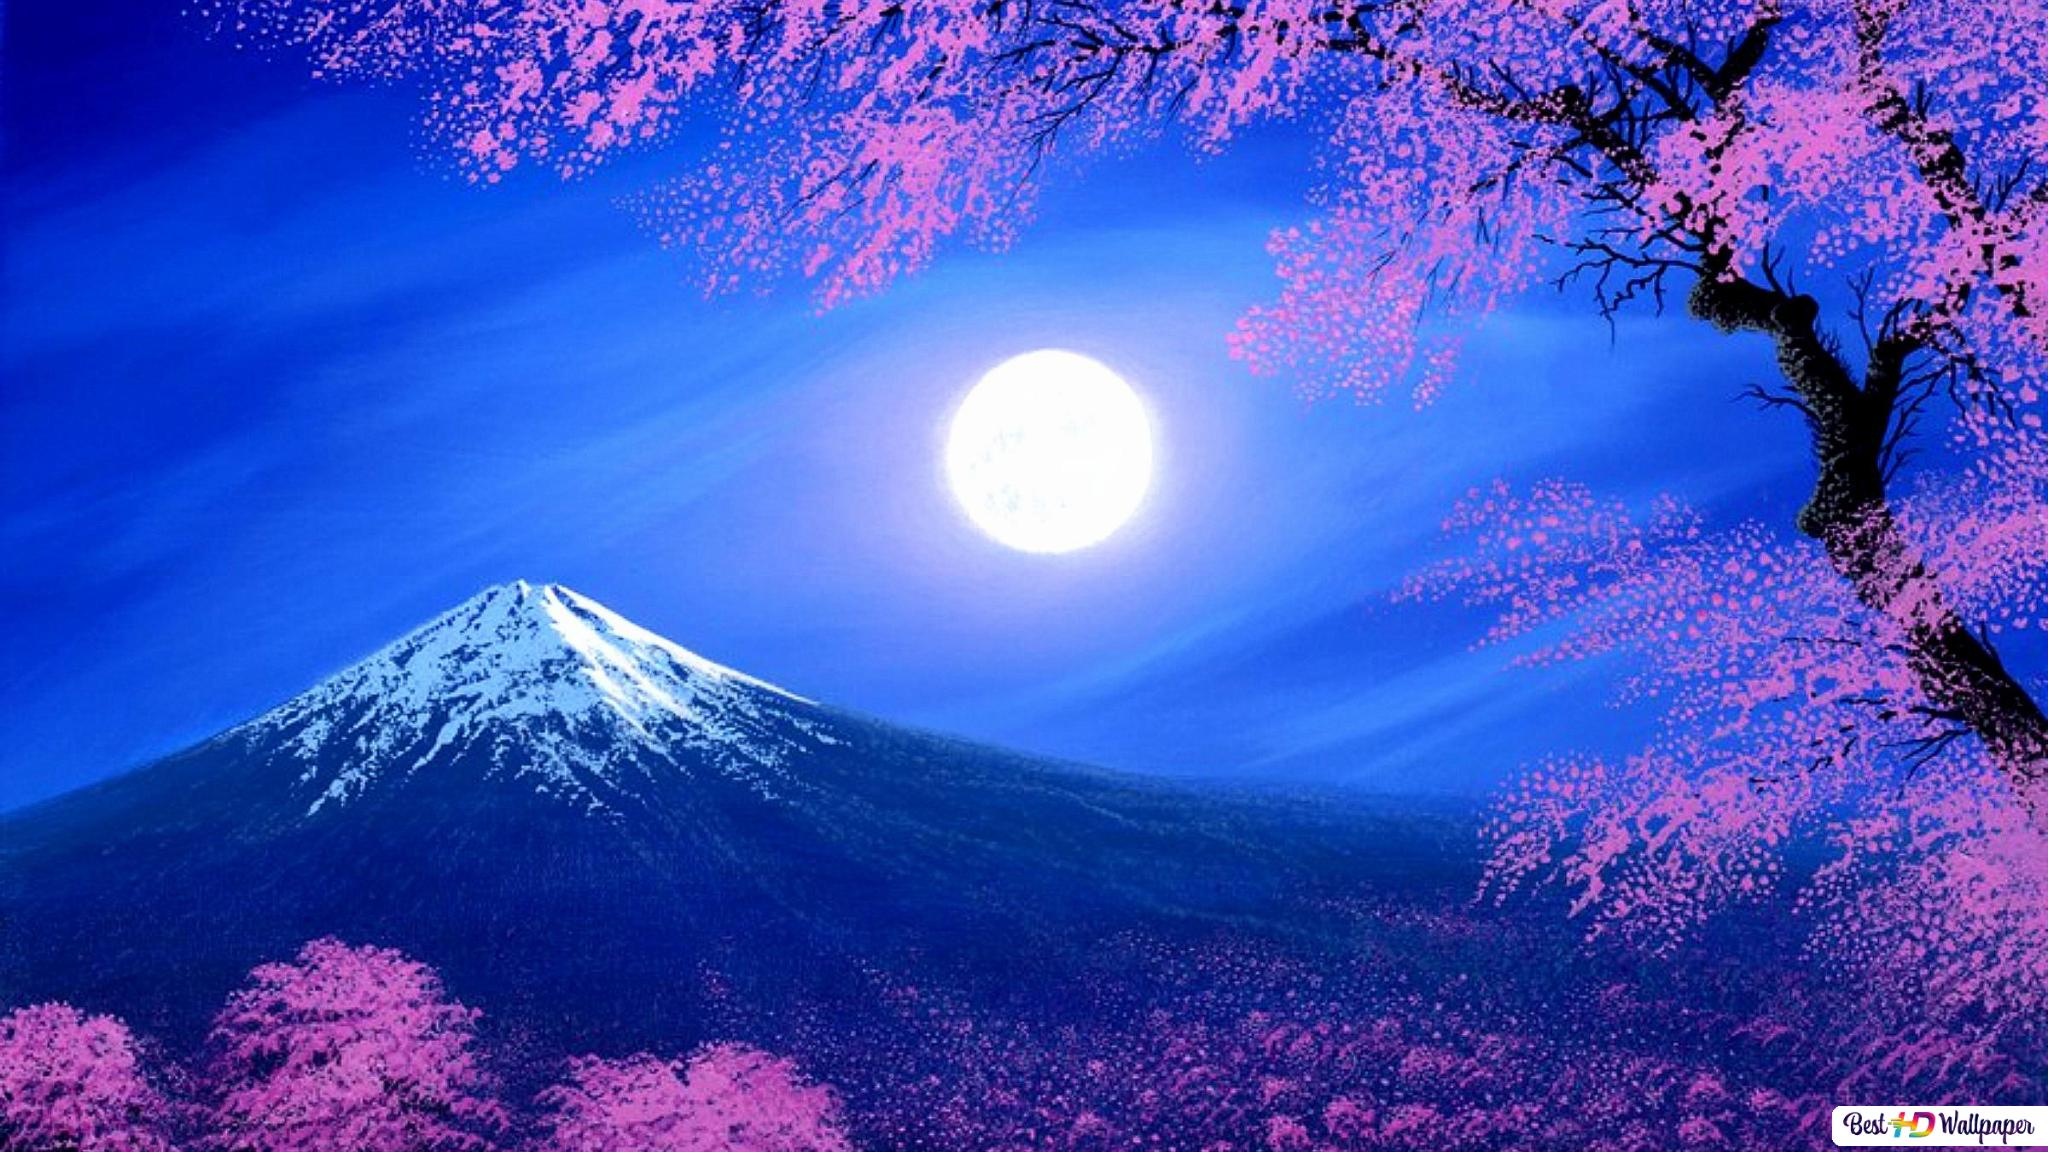 Mount Fuji In Spring Hd Wallpaper Download